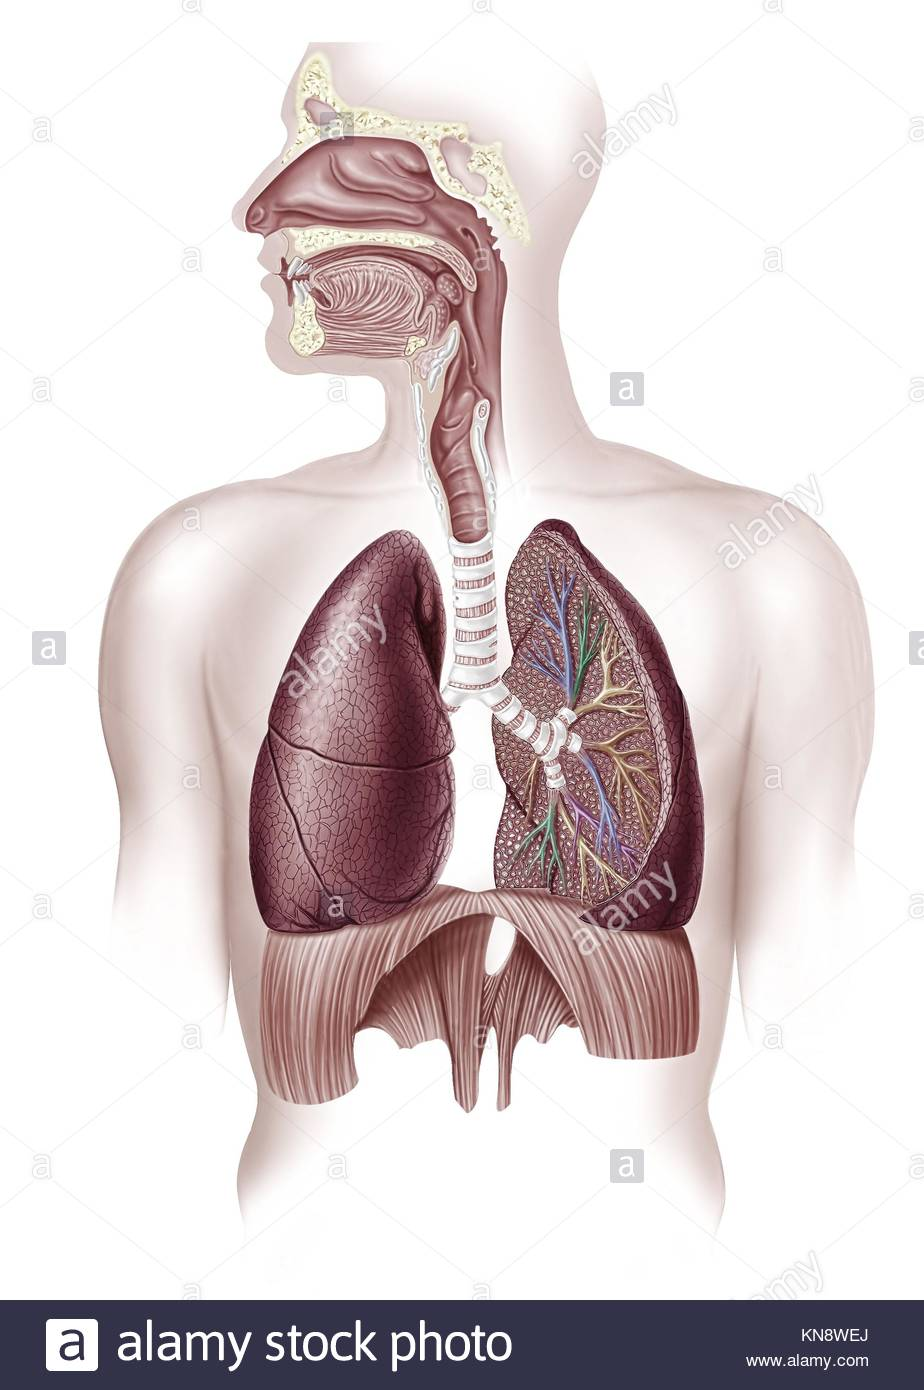 cutaway diagram of a human respiratory sustem, also the nasal and mouth  parts  2 d digital illustration, on white background, with clipping path